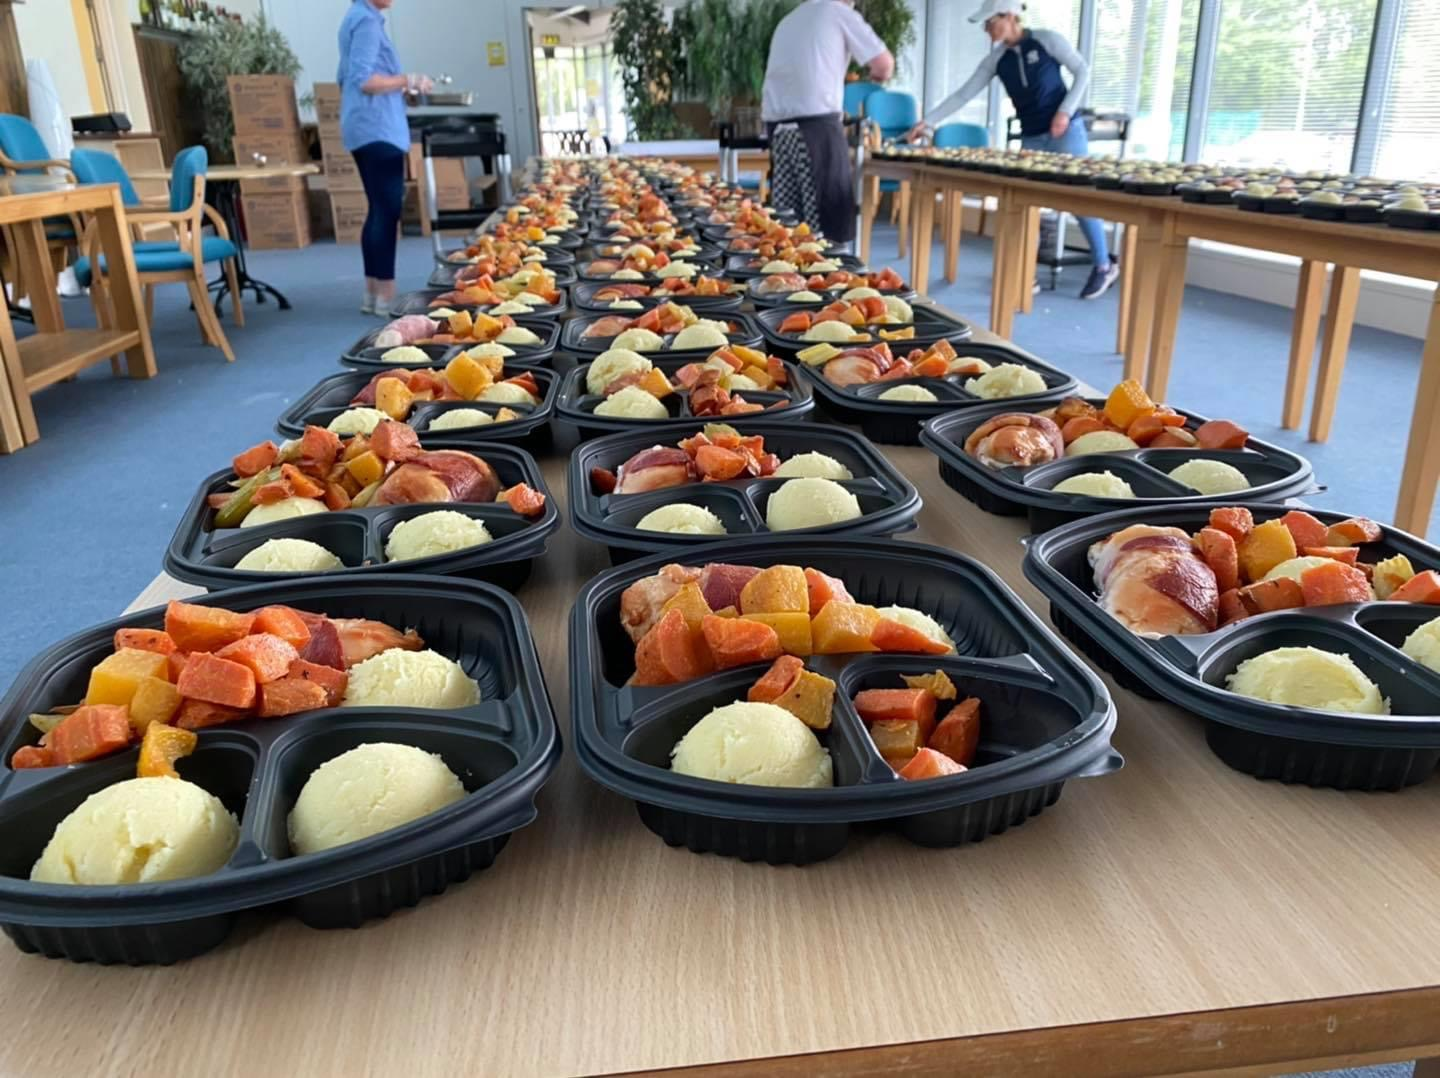 Volunteers at Meals on Wheels Tralee prepare the meals ahead of delivery to the clients.